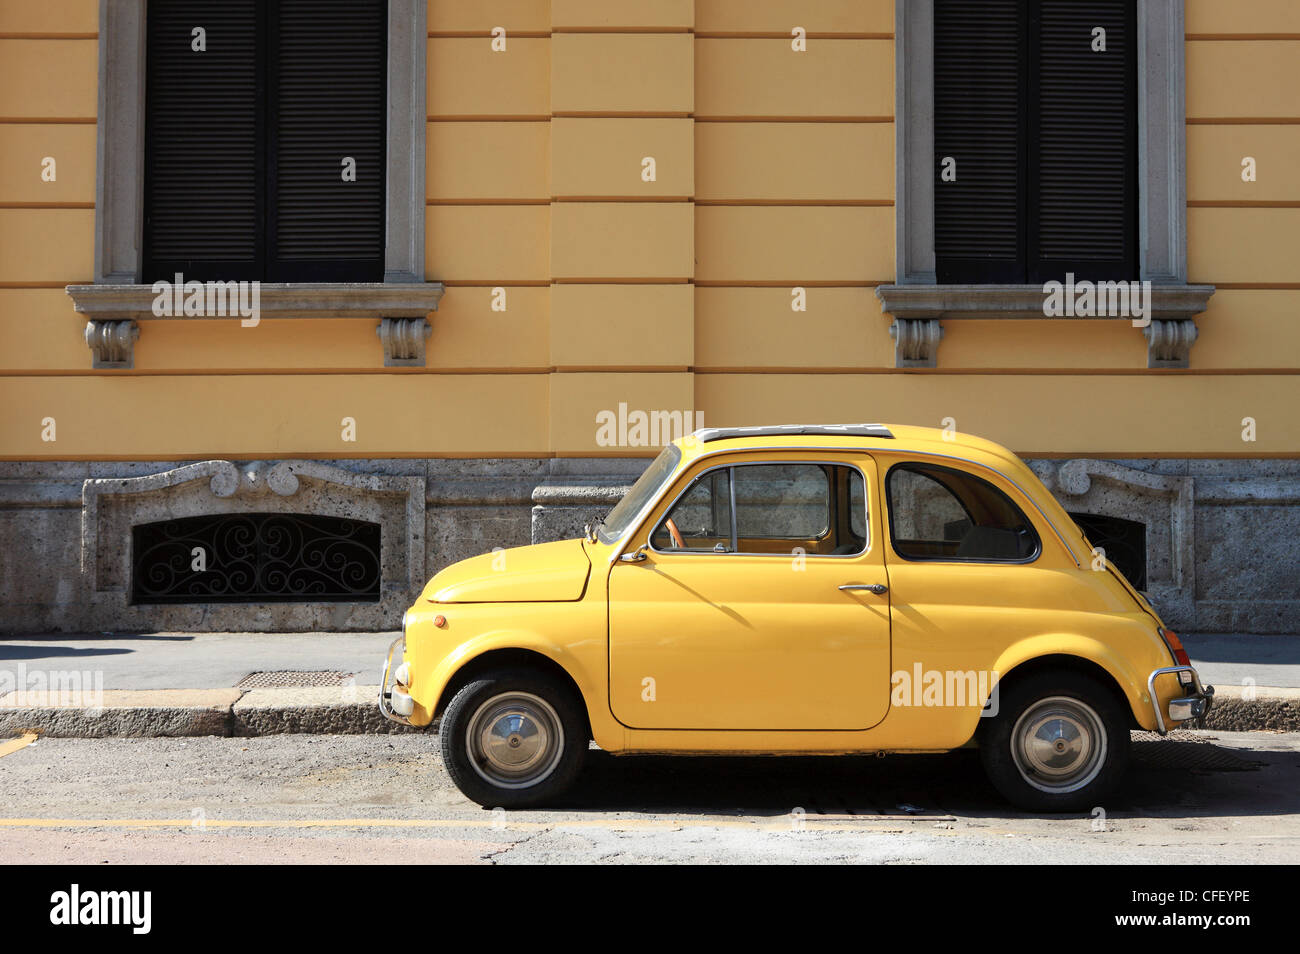 Old Car, Fiat 500, Italy, Europe - Stock Image